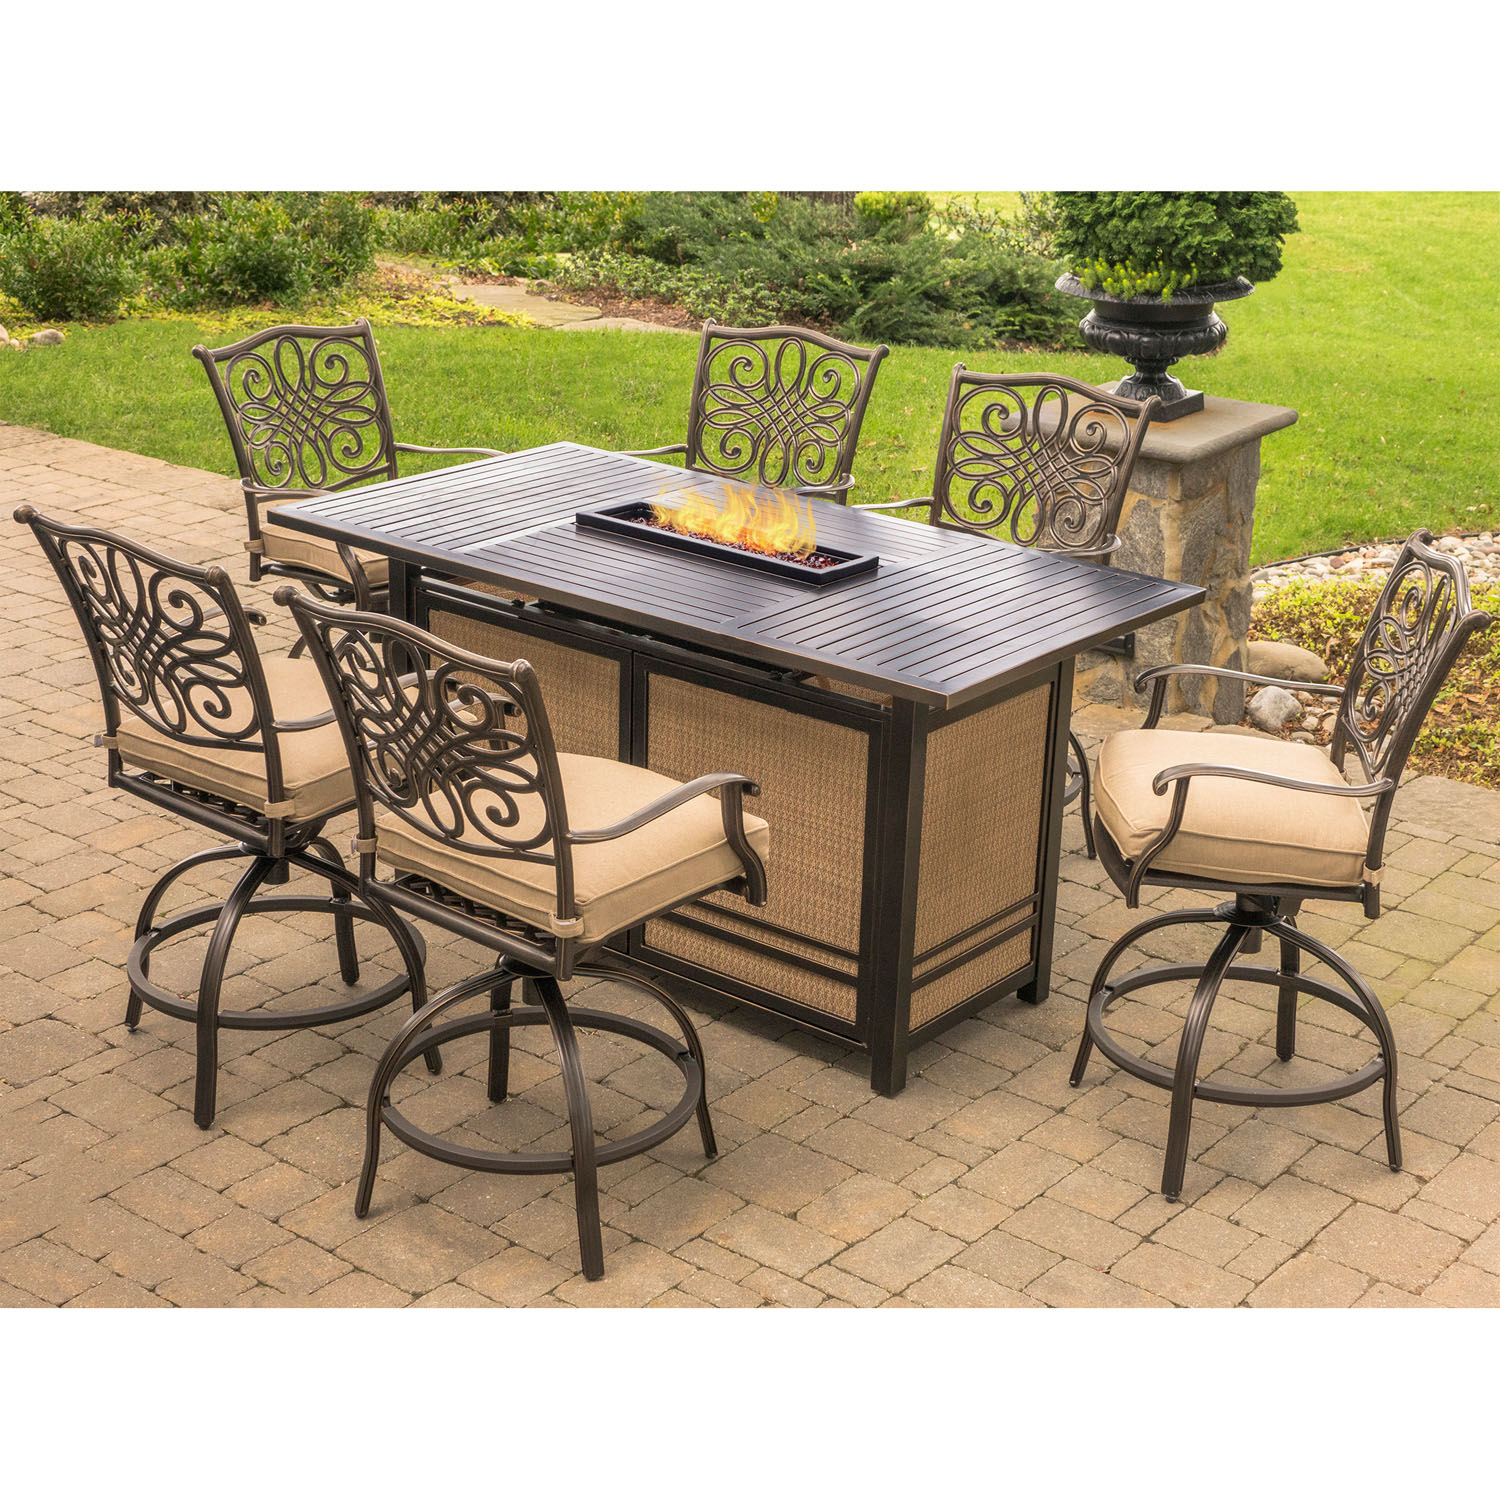 sets high sale large under discount room furniture buy outdoor with set person glass chairs patio and deals umbrella wicker dining table top garden piece